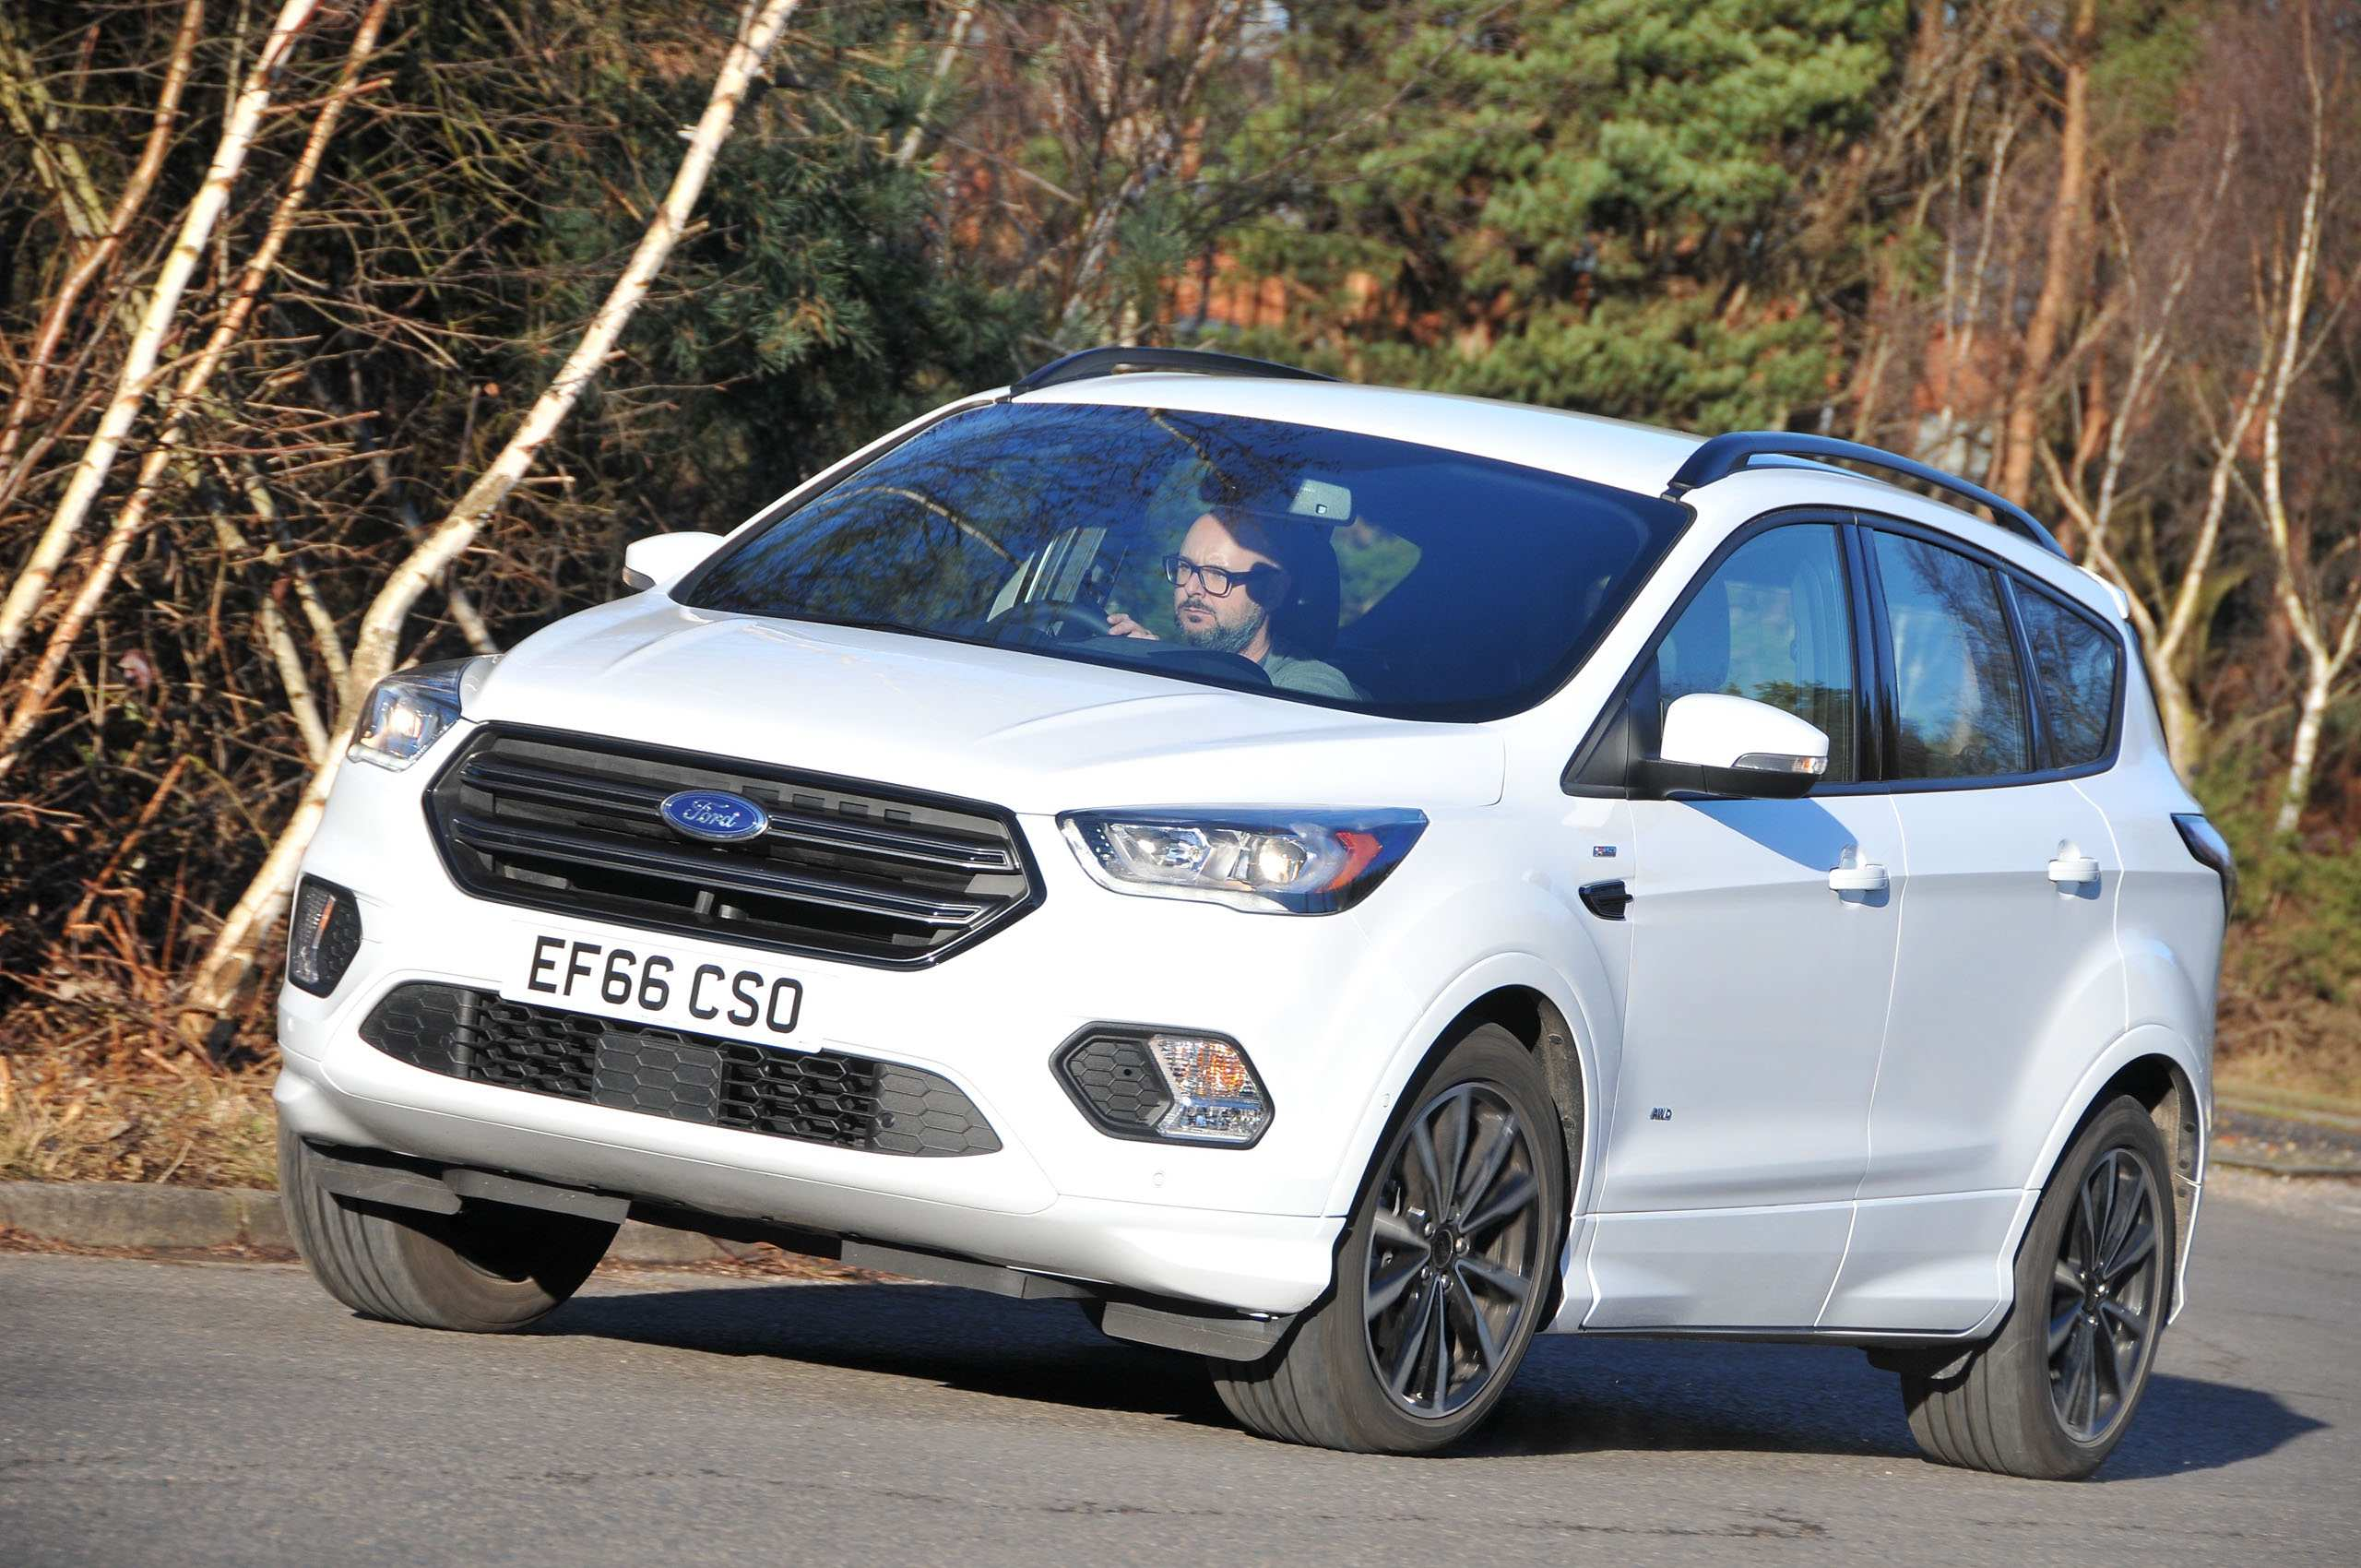 92 The Best Best Ford Kuga 2019 Review And Release Date Interior